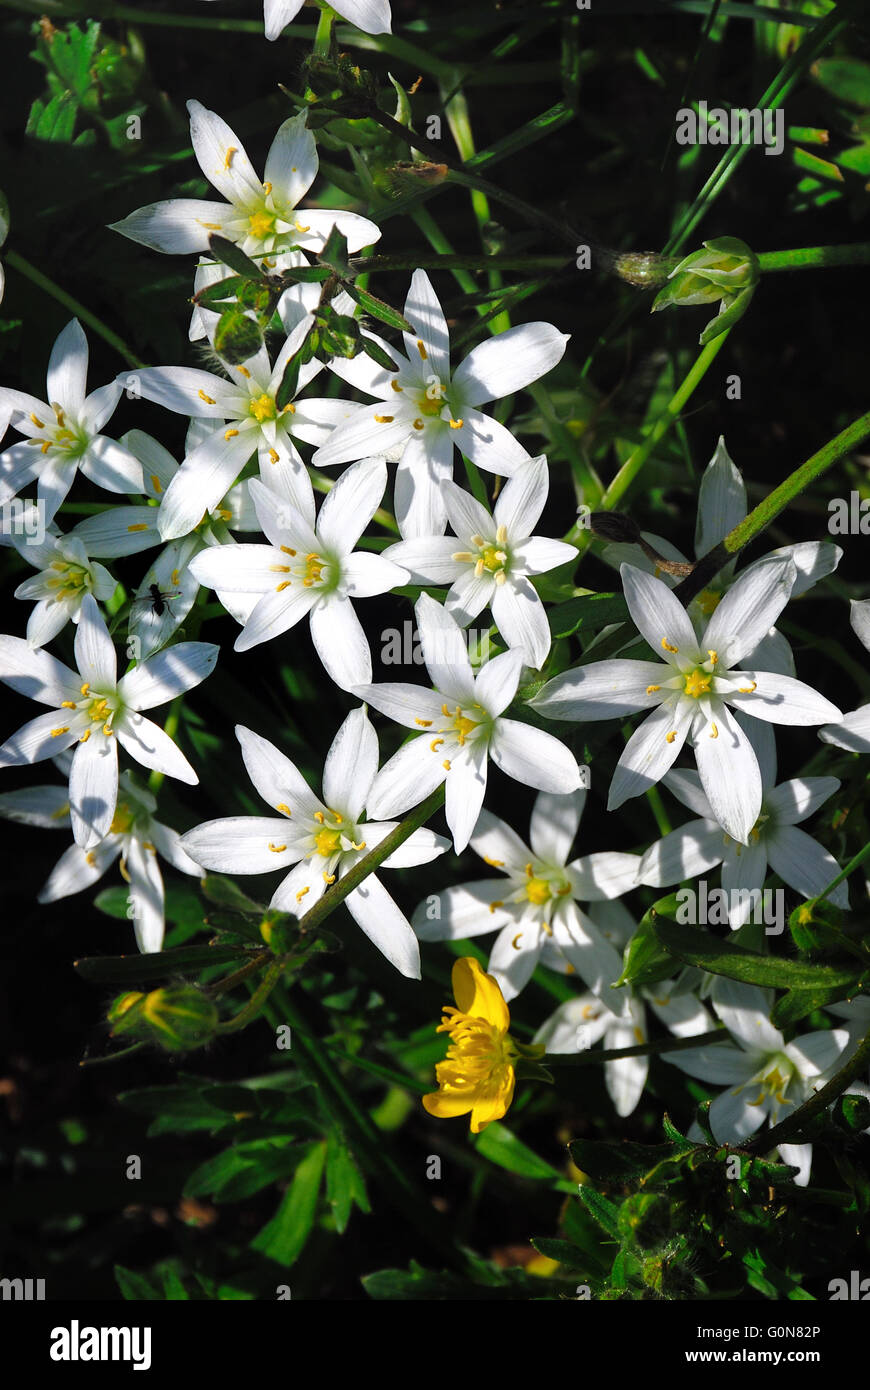 White star shaped flowers stock photos white star shaped flowers ornithogalum umbellatum is a genus of perennial plants mostly native to southern europe and southern africa mightylinksfo